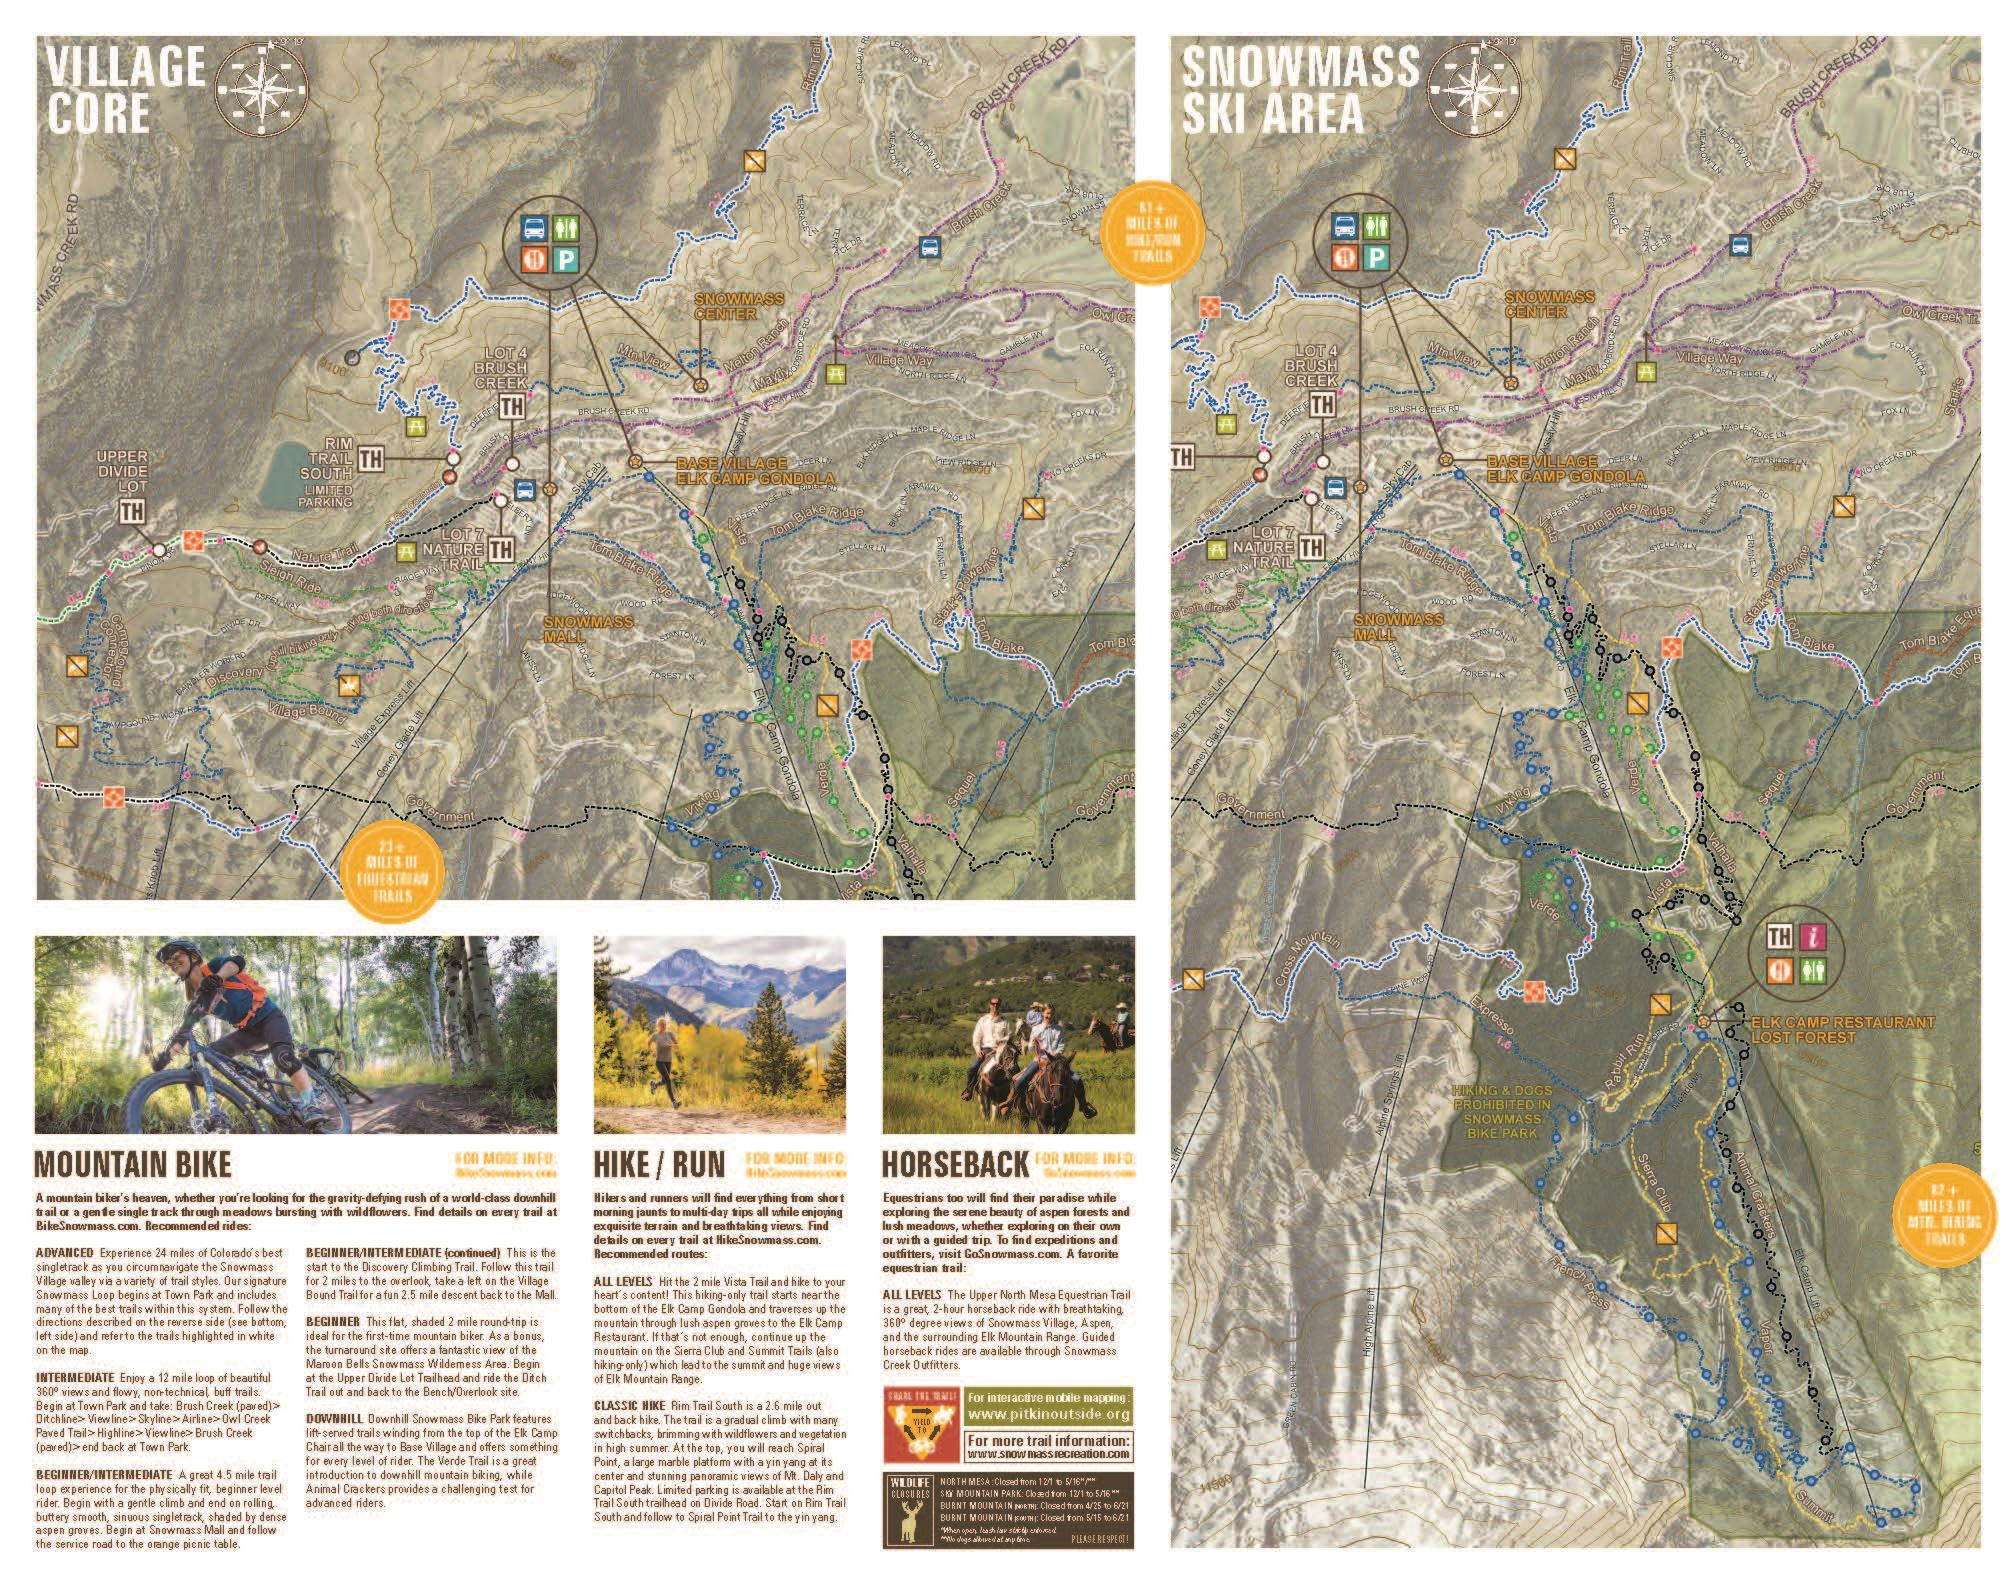 Snowmass Summer Trails | Snowmass Village Parks and Recreation, CO